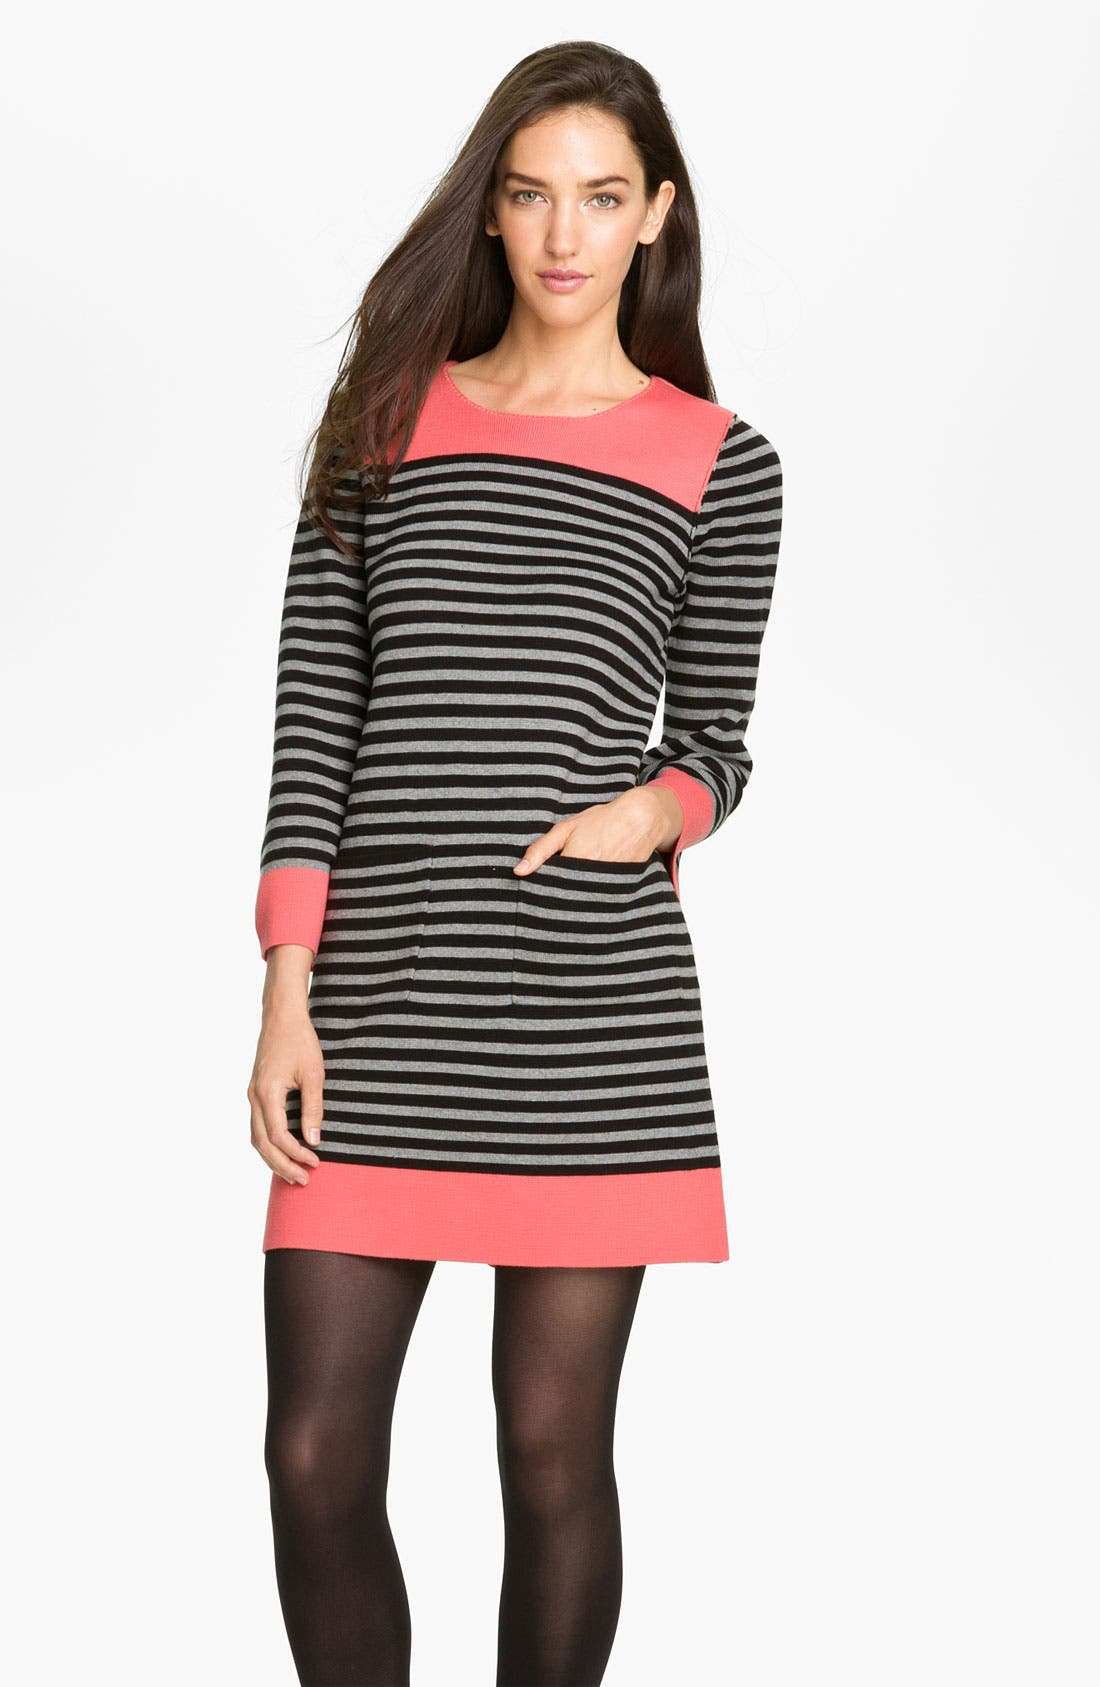 Alternate Image 1 Selected - Eliza J Stripe Contrast Trim Shift Dress